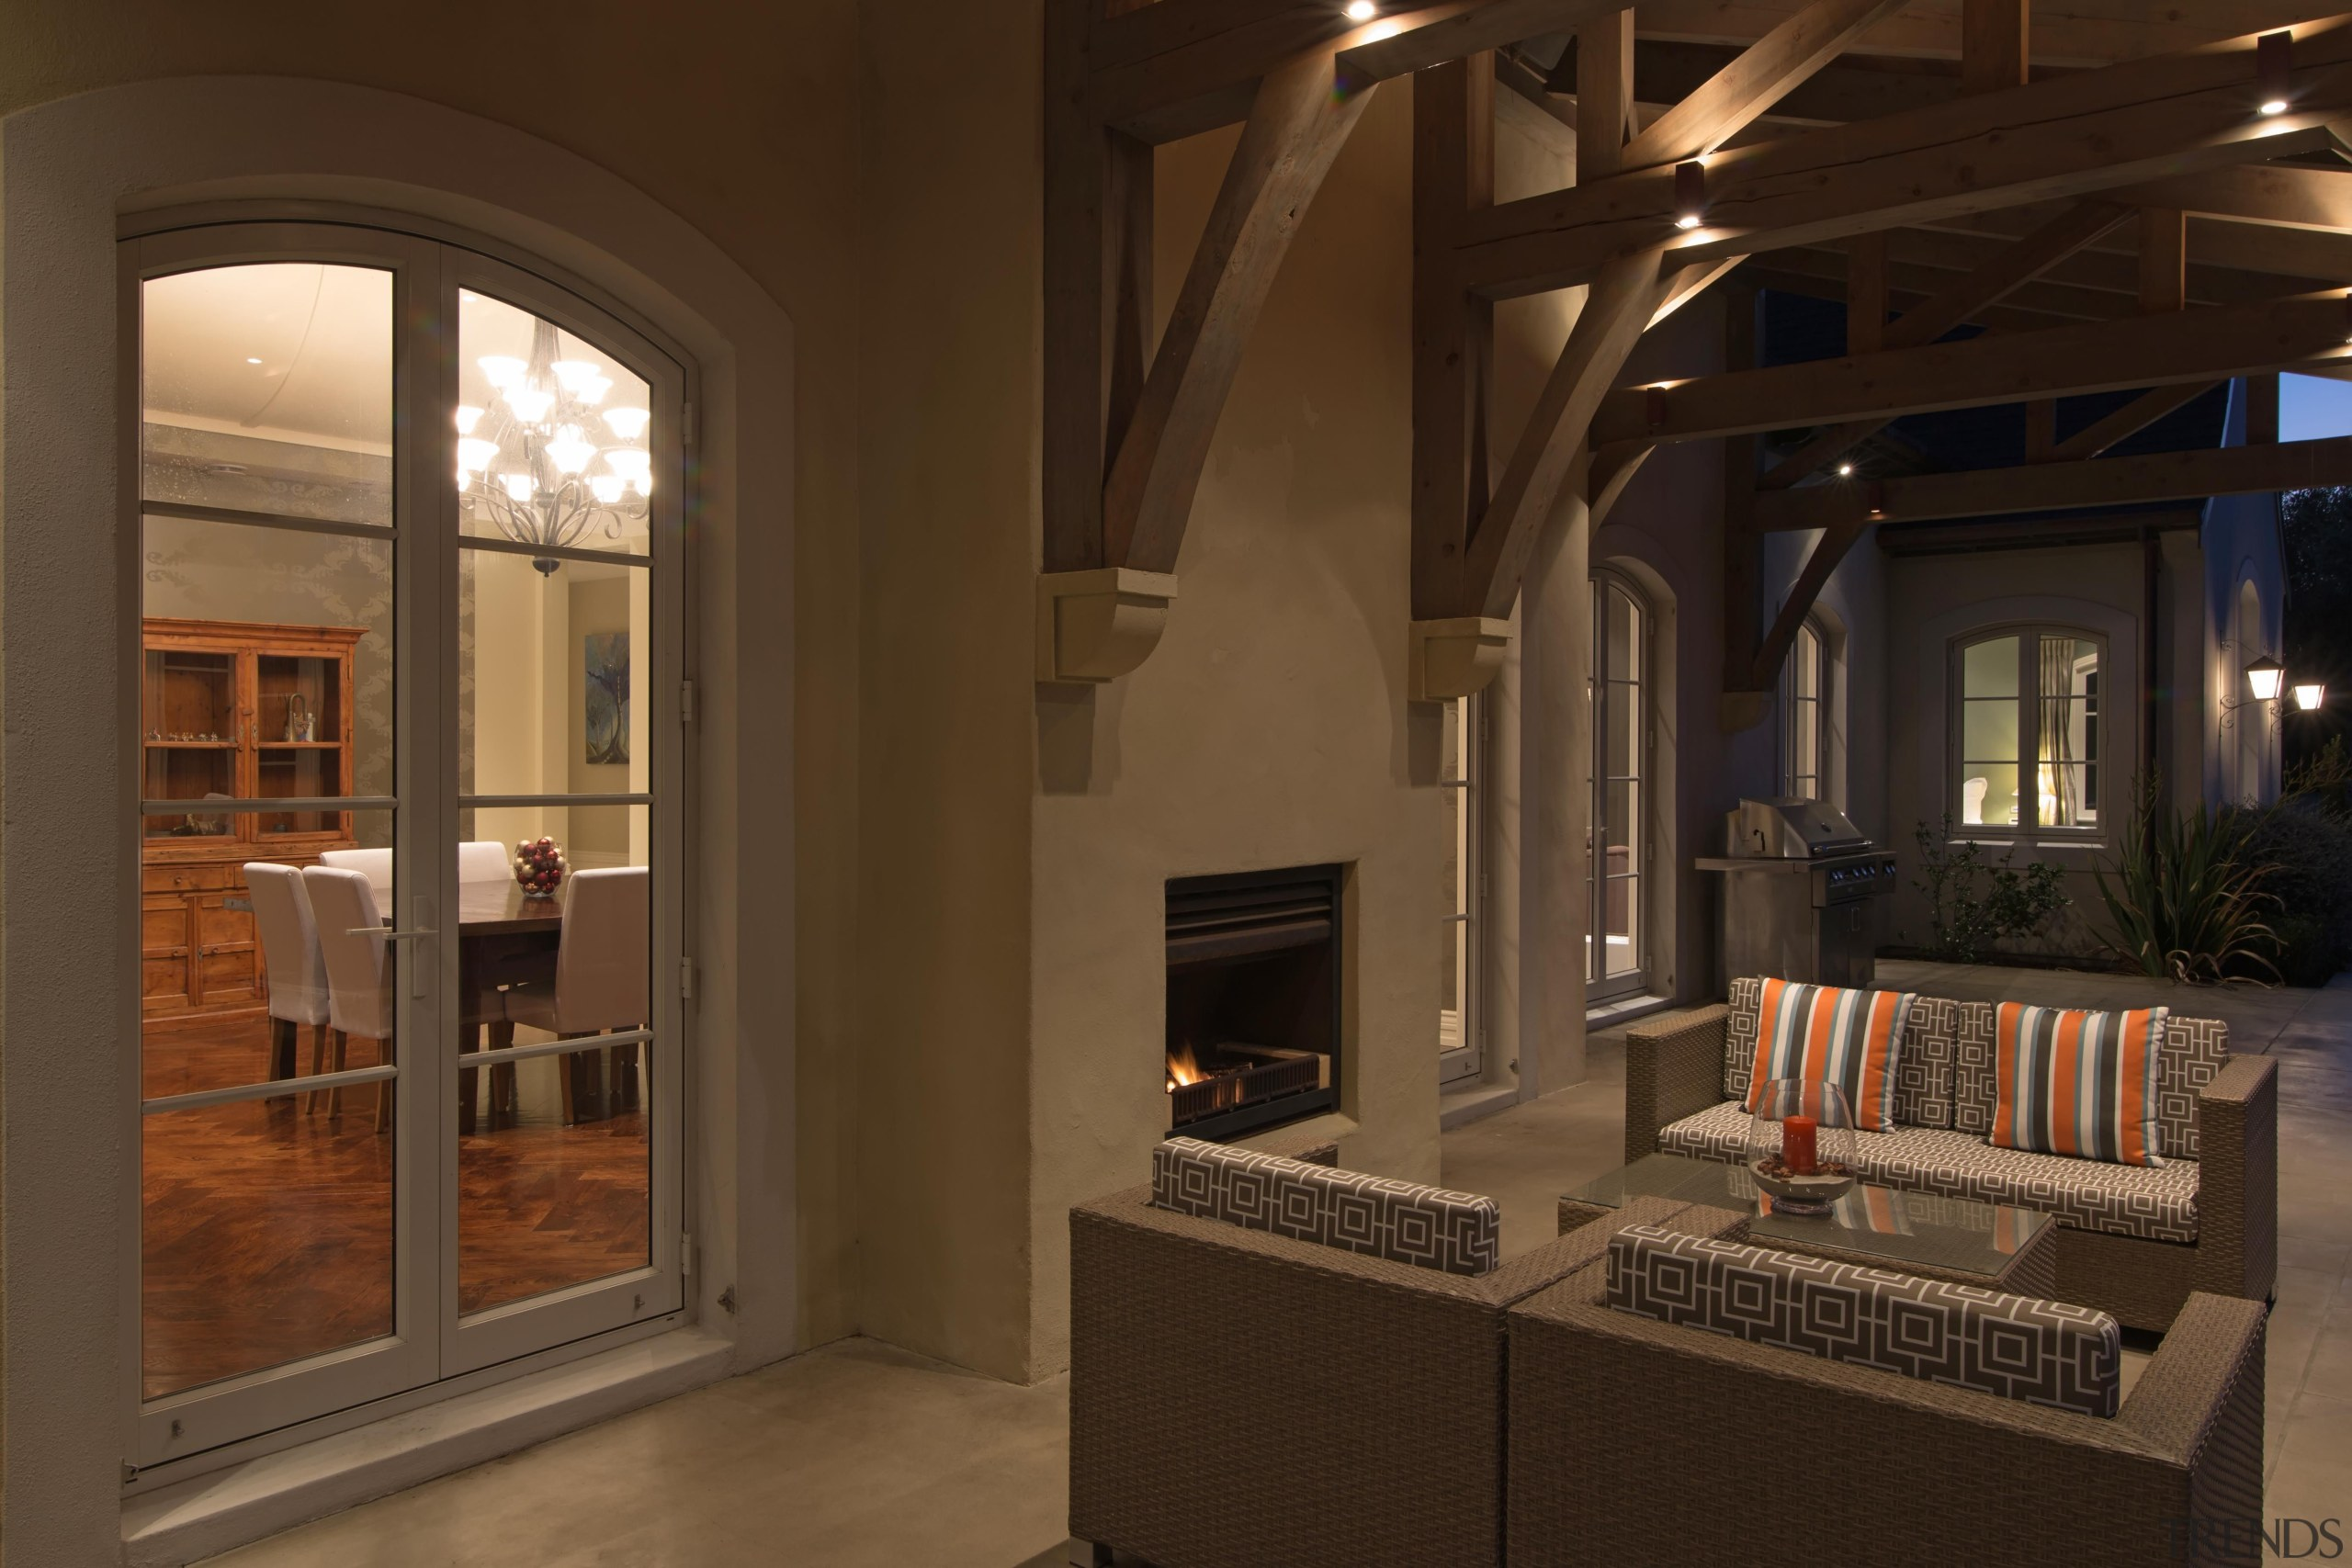 Img 4529 - ceiling | estate | fireplace ceiling, estate, fireplace, home, interior design, living room, brown